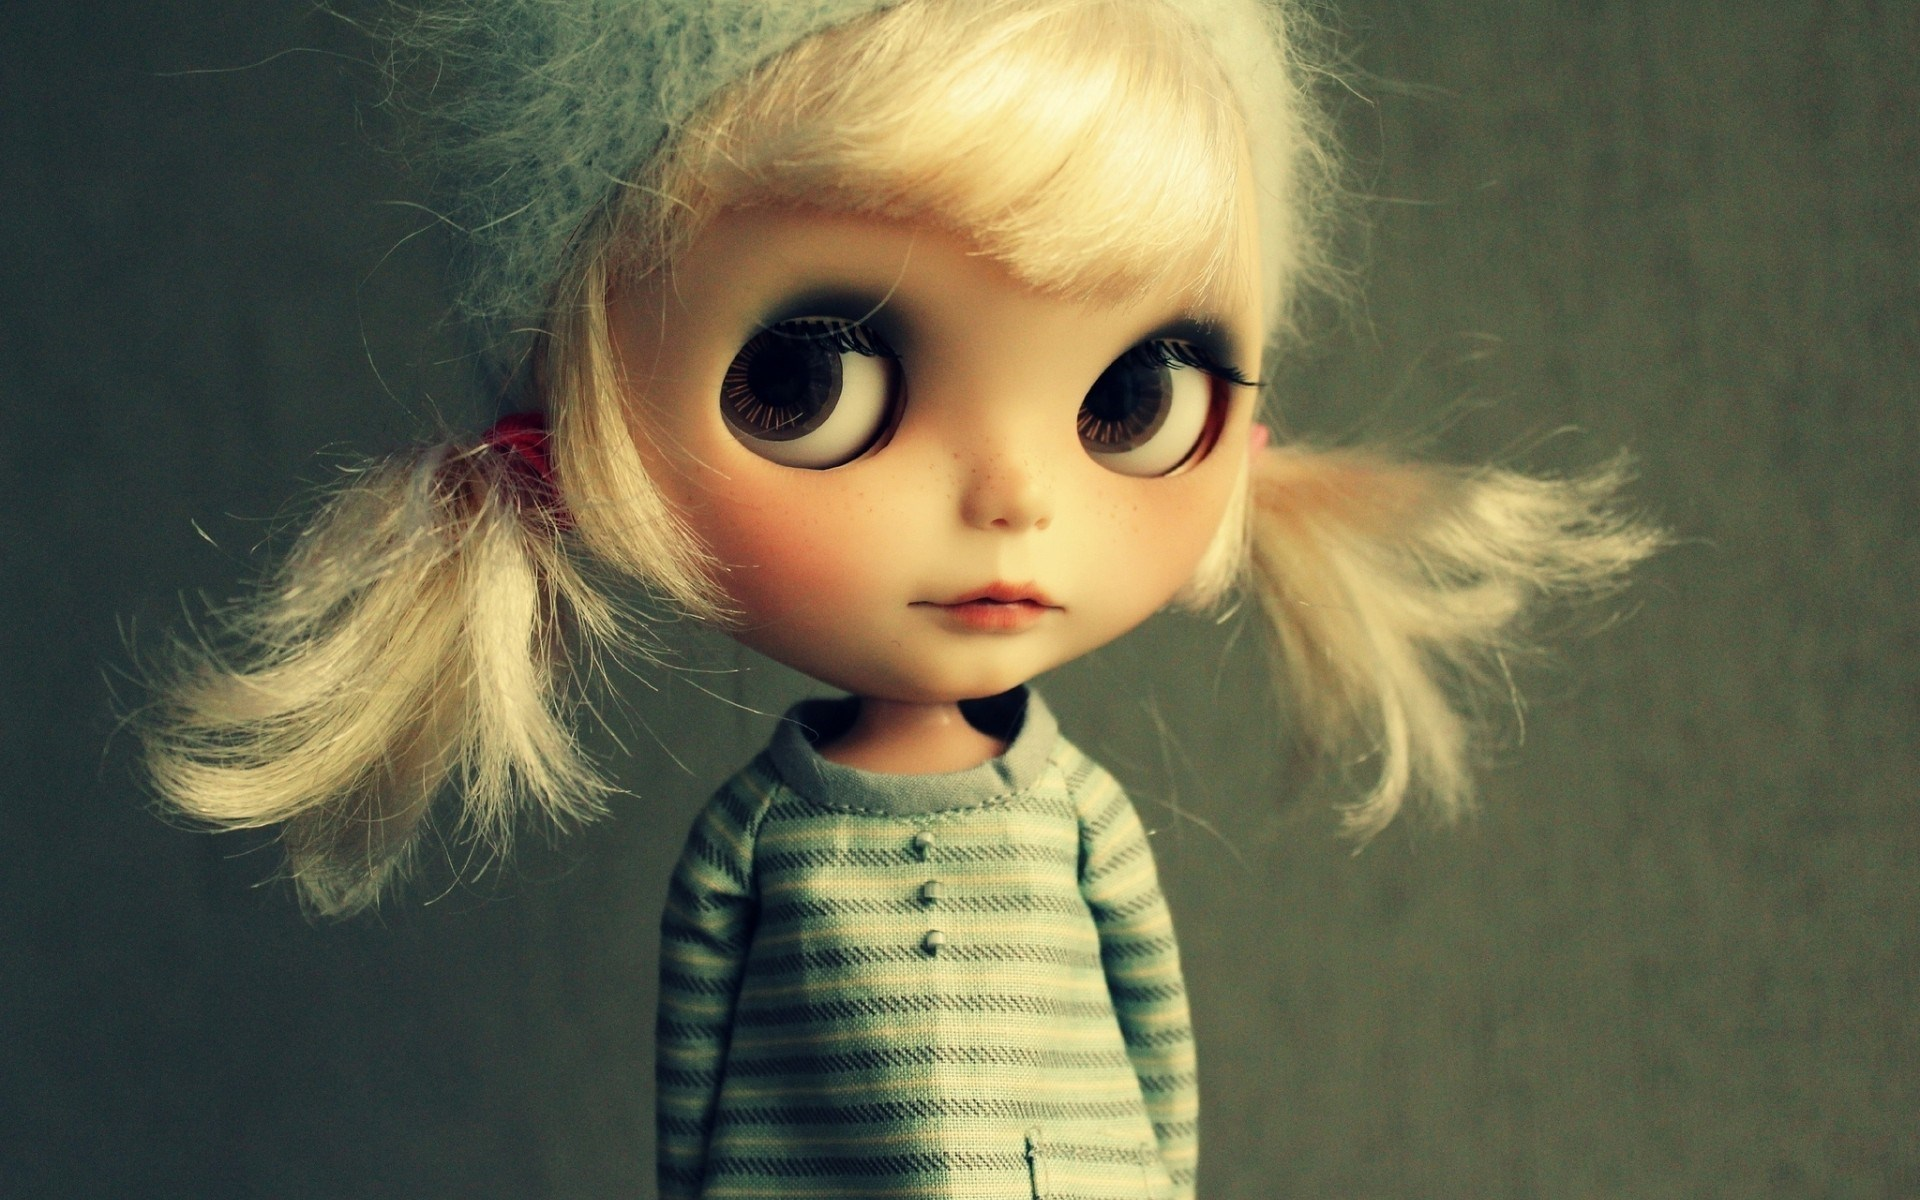 cute toy doll wallpaper 42327